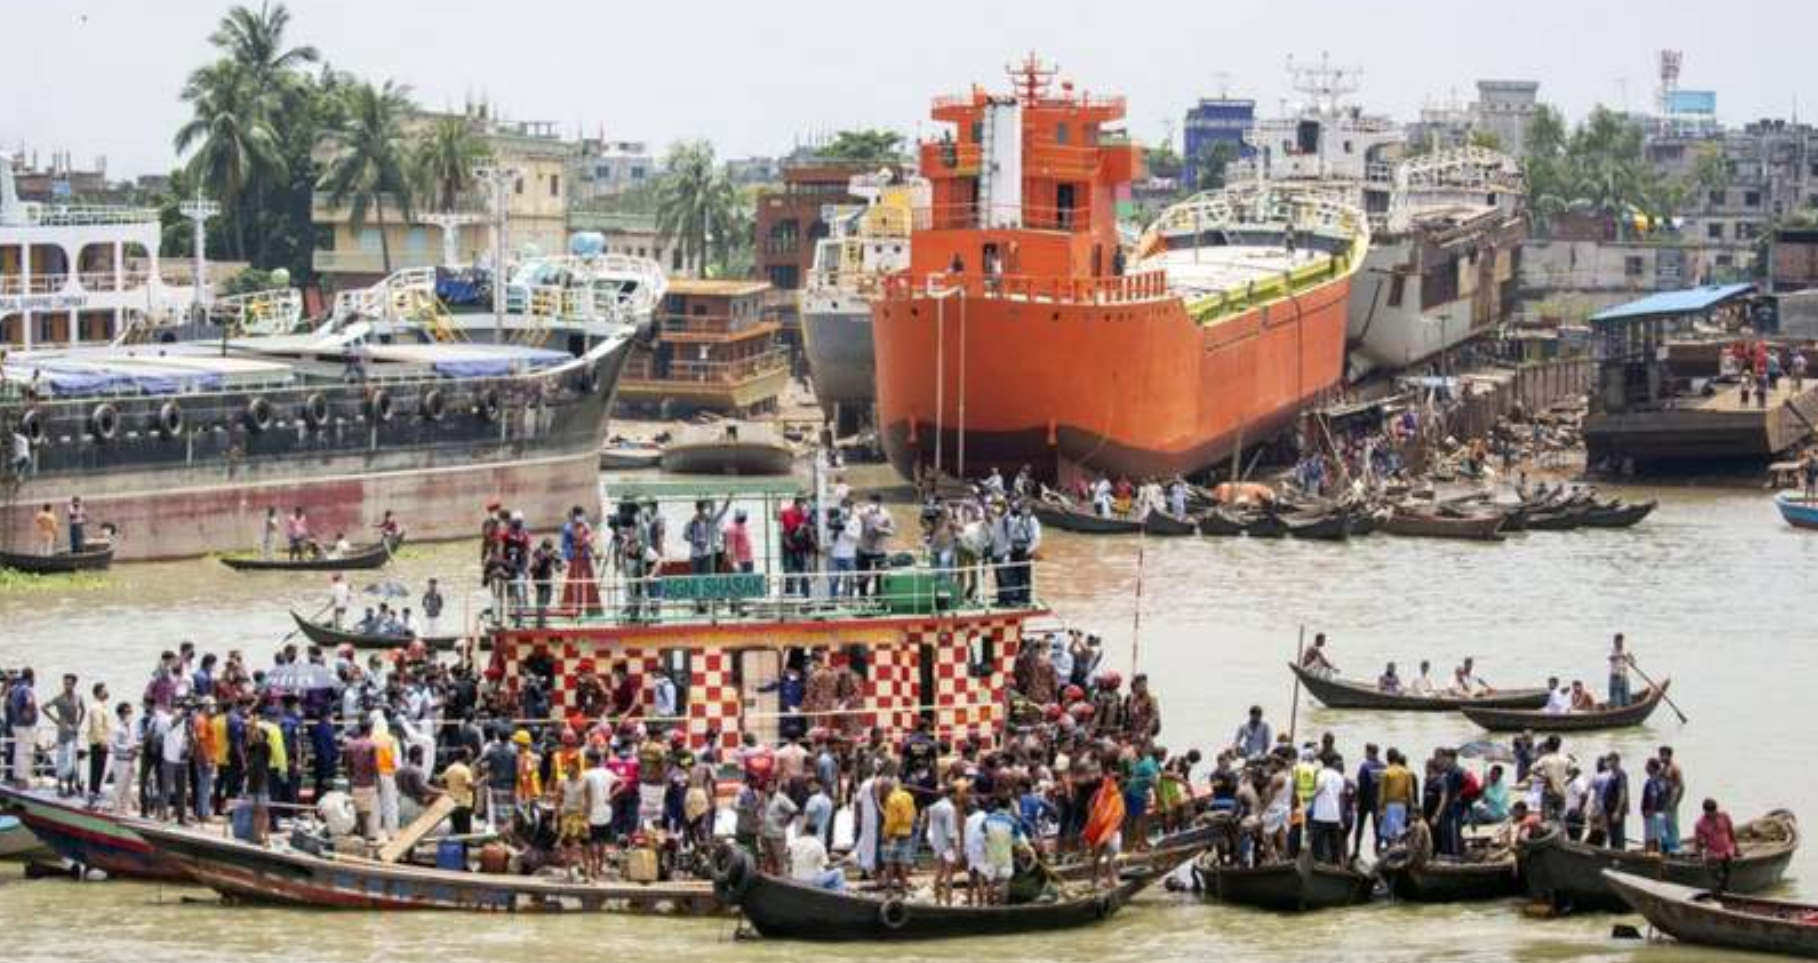 32 dead as ferry crashes in Bangladesh